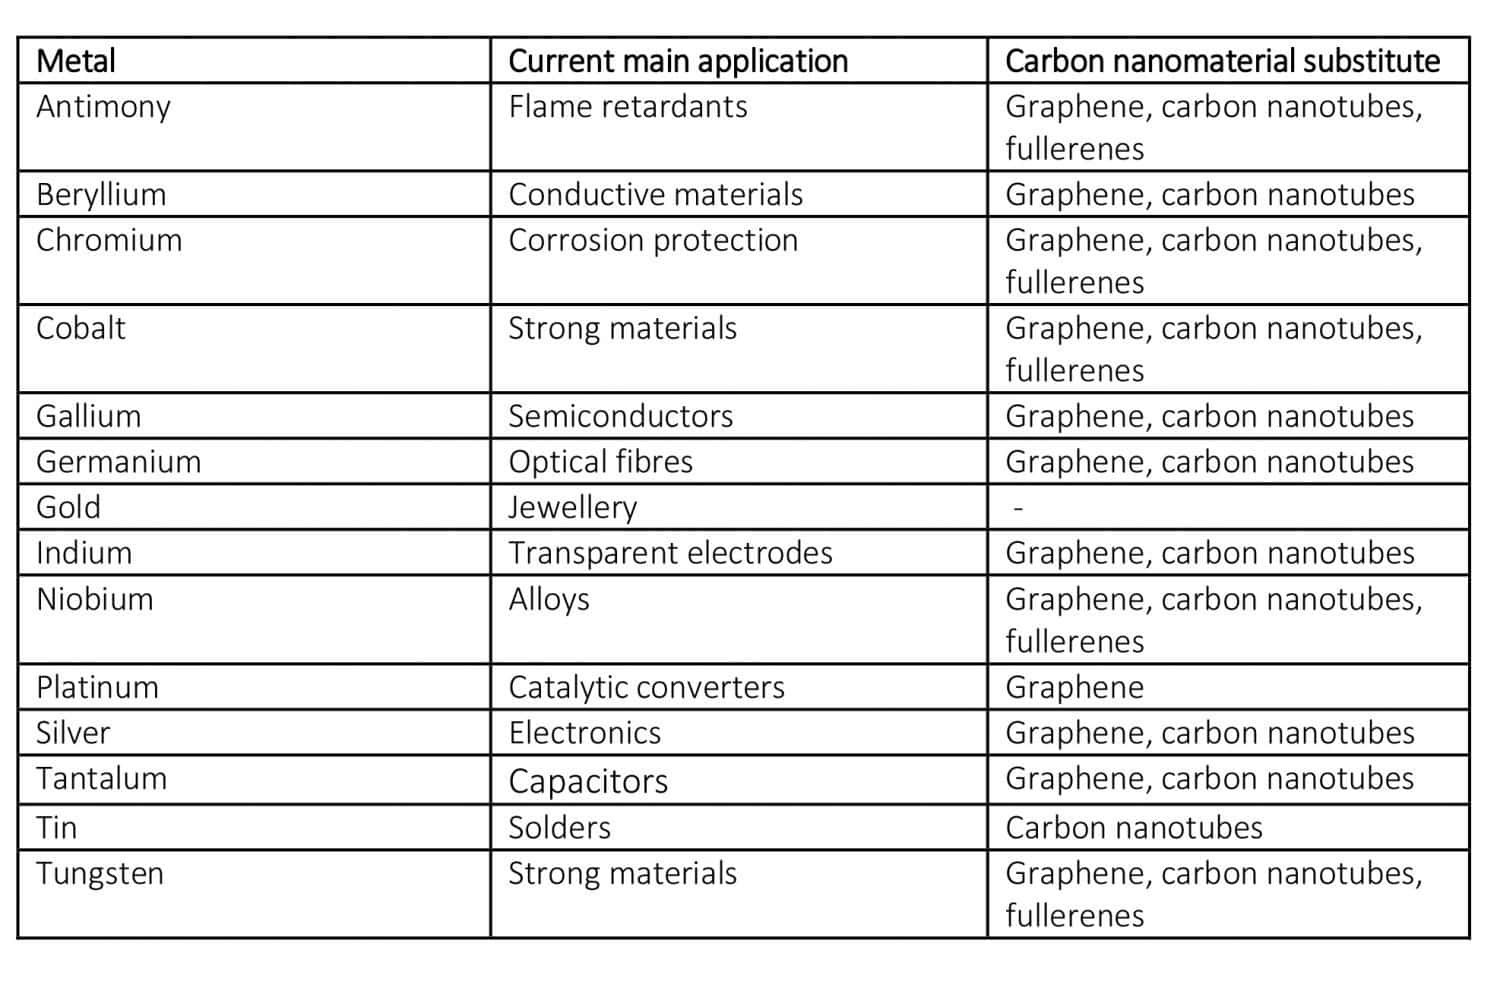 14 metals with carbon nanomaterials